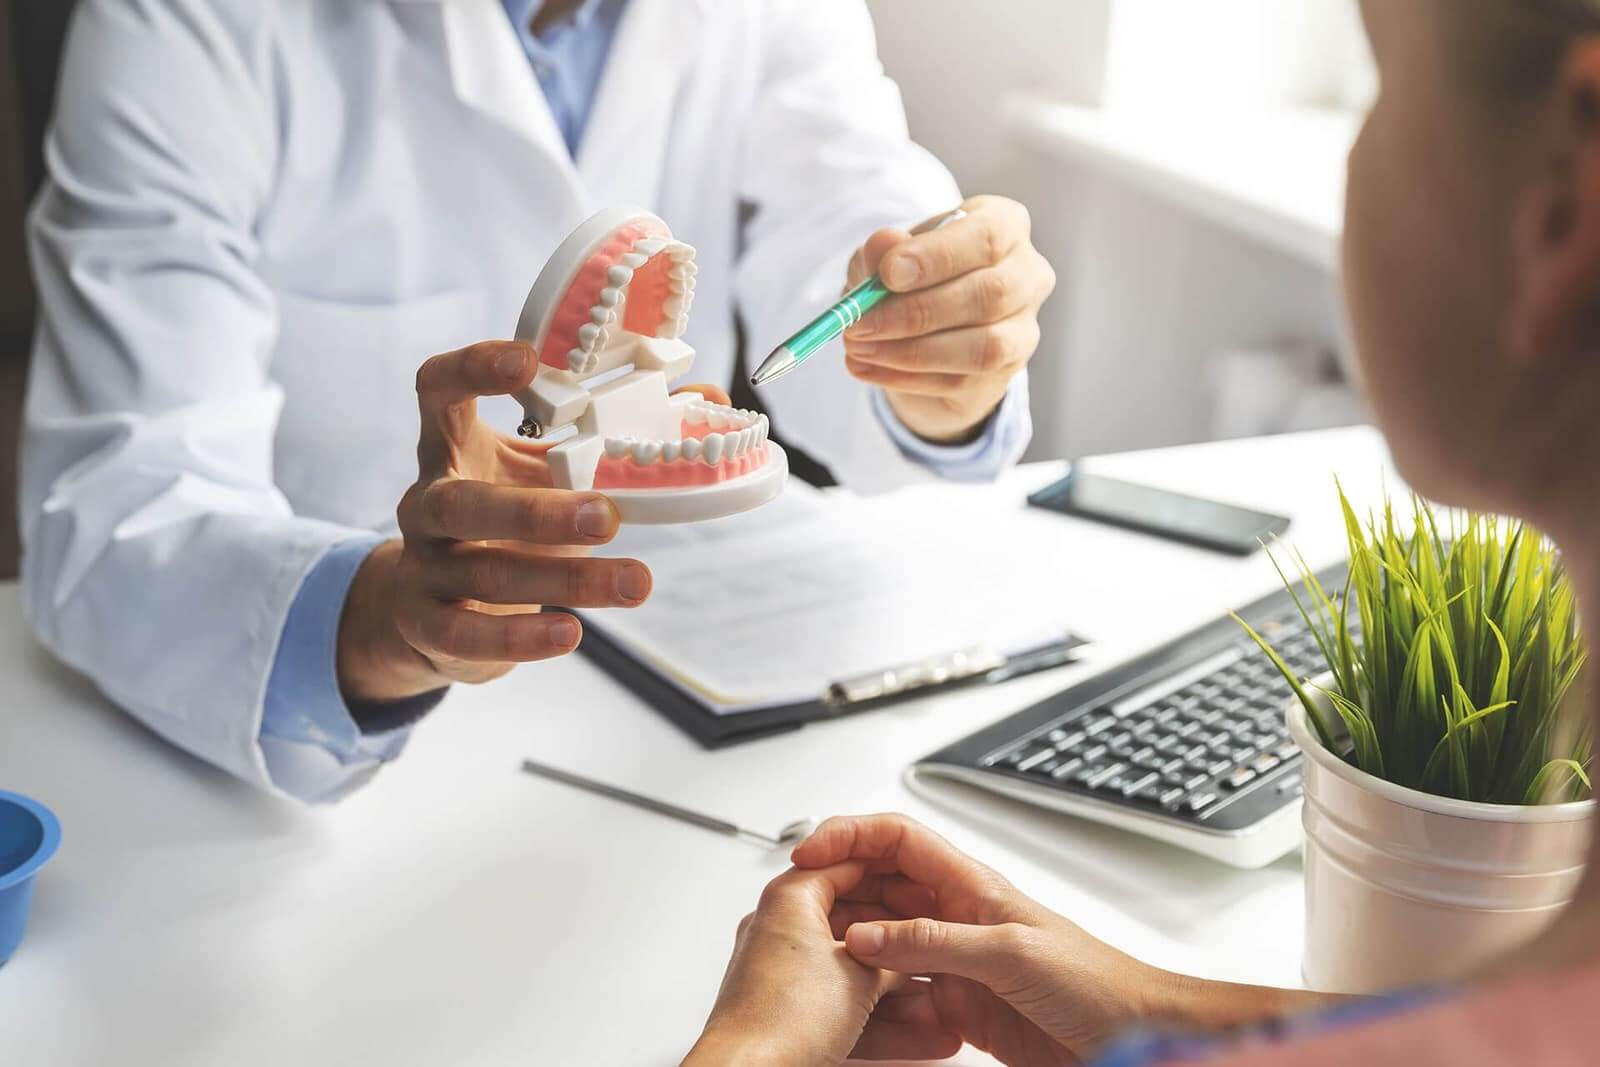 How Painful is the Dental Implant Process?